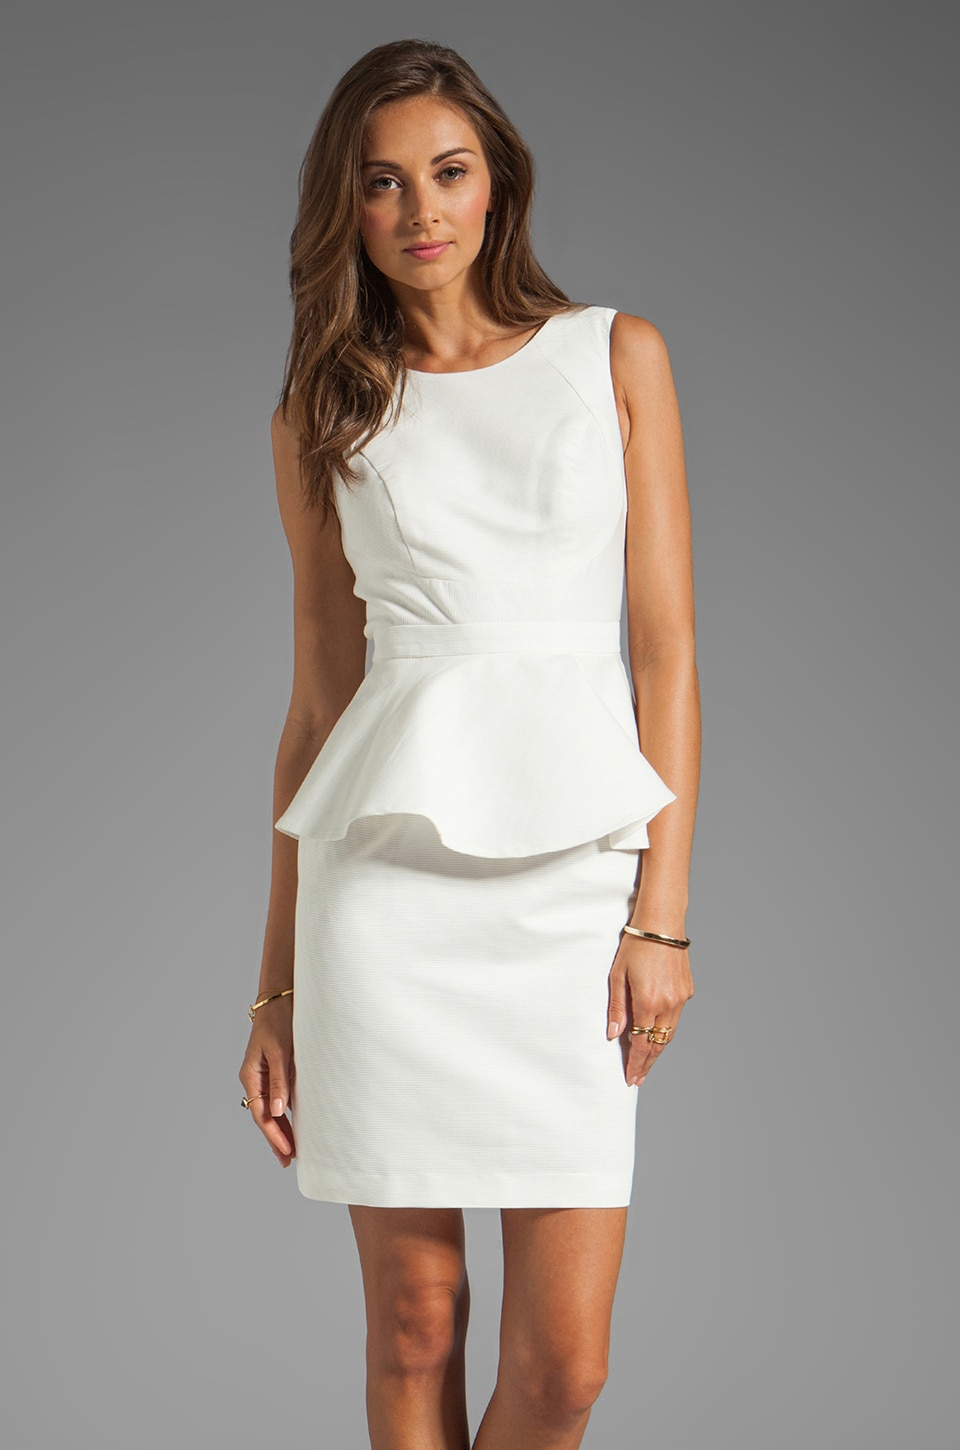 Shoshanna Alexa Peplum Dress in White